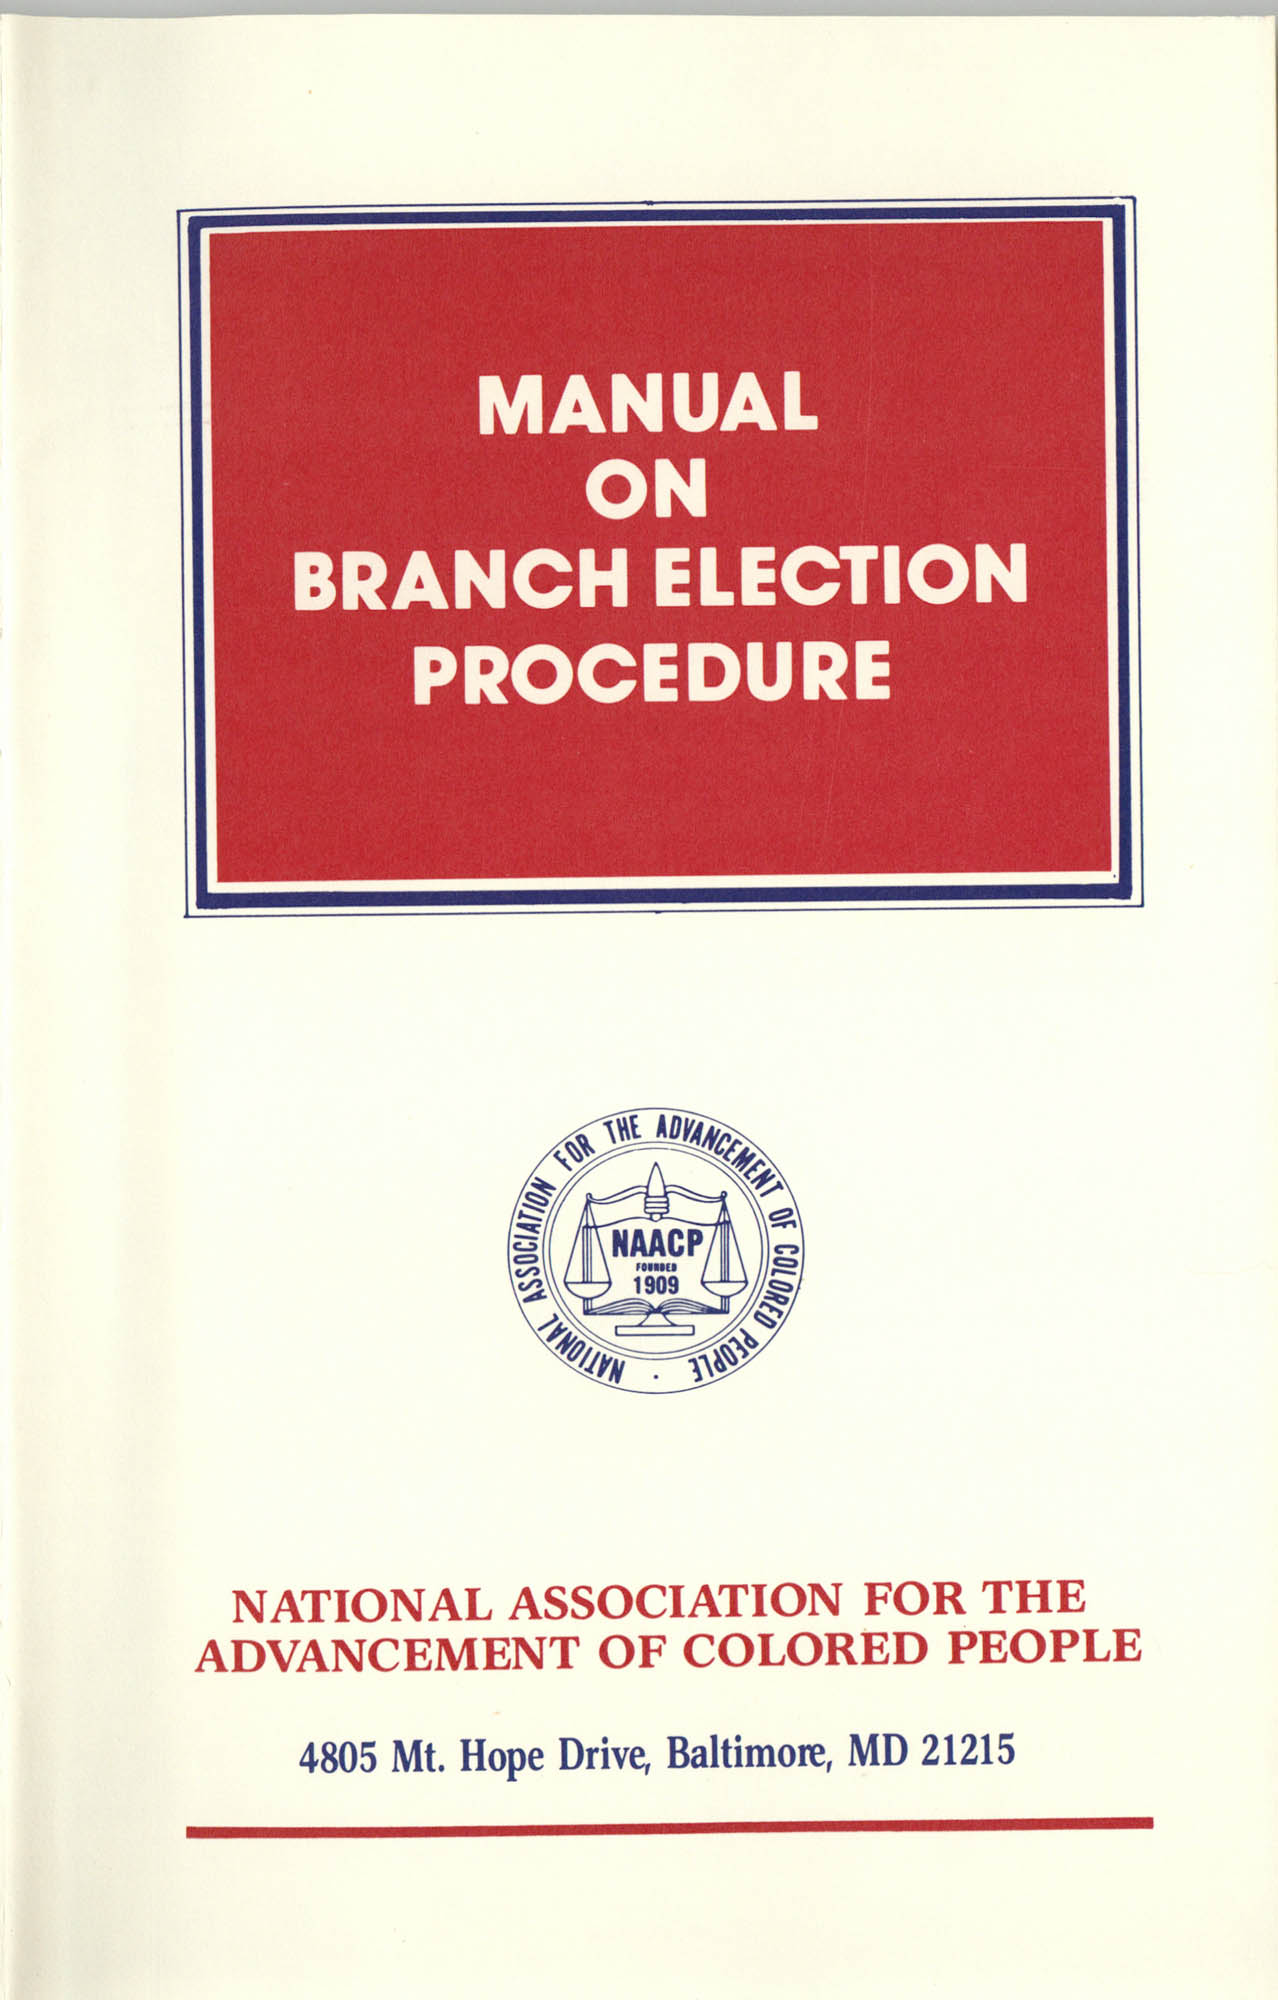 Manual on Branch Election Procedure, Front Cover